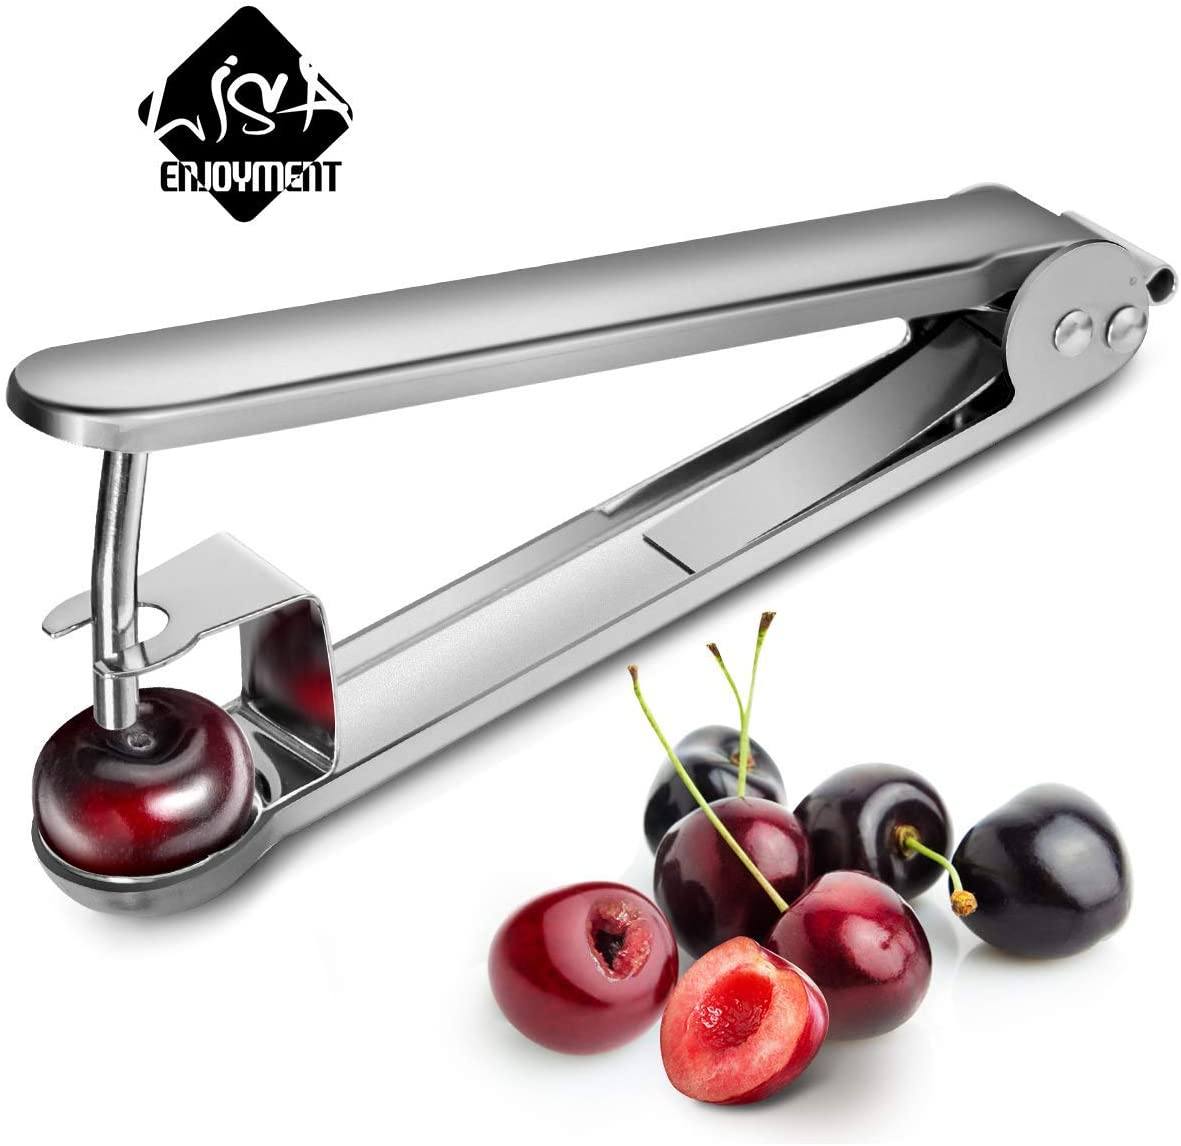 LISA ENJOYMENT Cherry Pitter Cherry and Olive Pitter Heavy Duty 304 Stainless Steel Olive Pitter Remover Seed Remover Portable Cherry Pitter Tool Kitchen aid